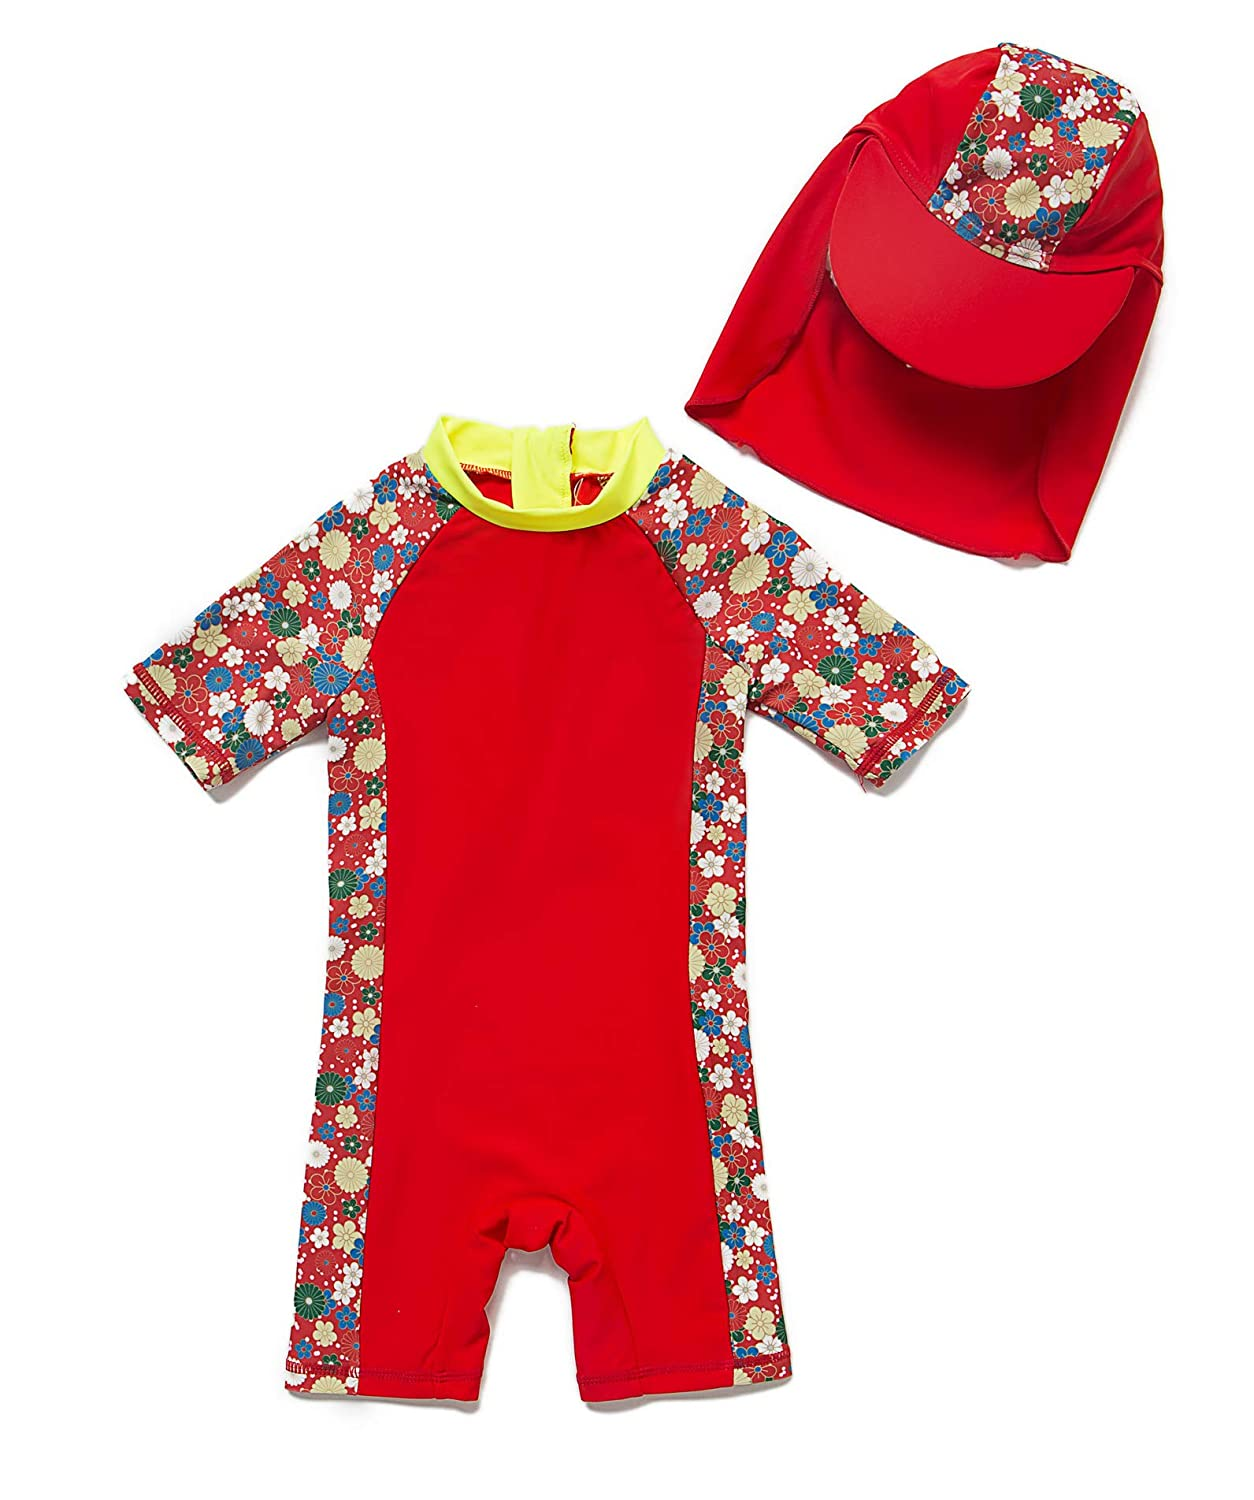 Sun Protection Swimsuit Baby Girl Toddler One-Piece UPF 50